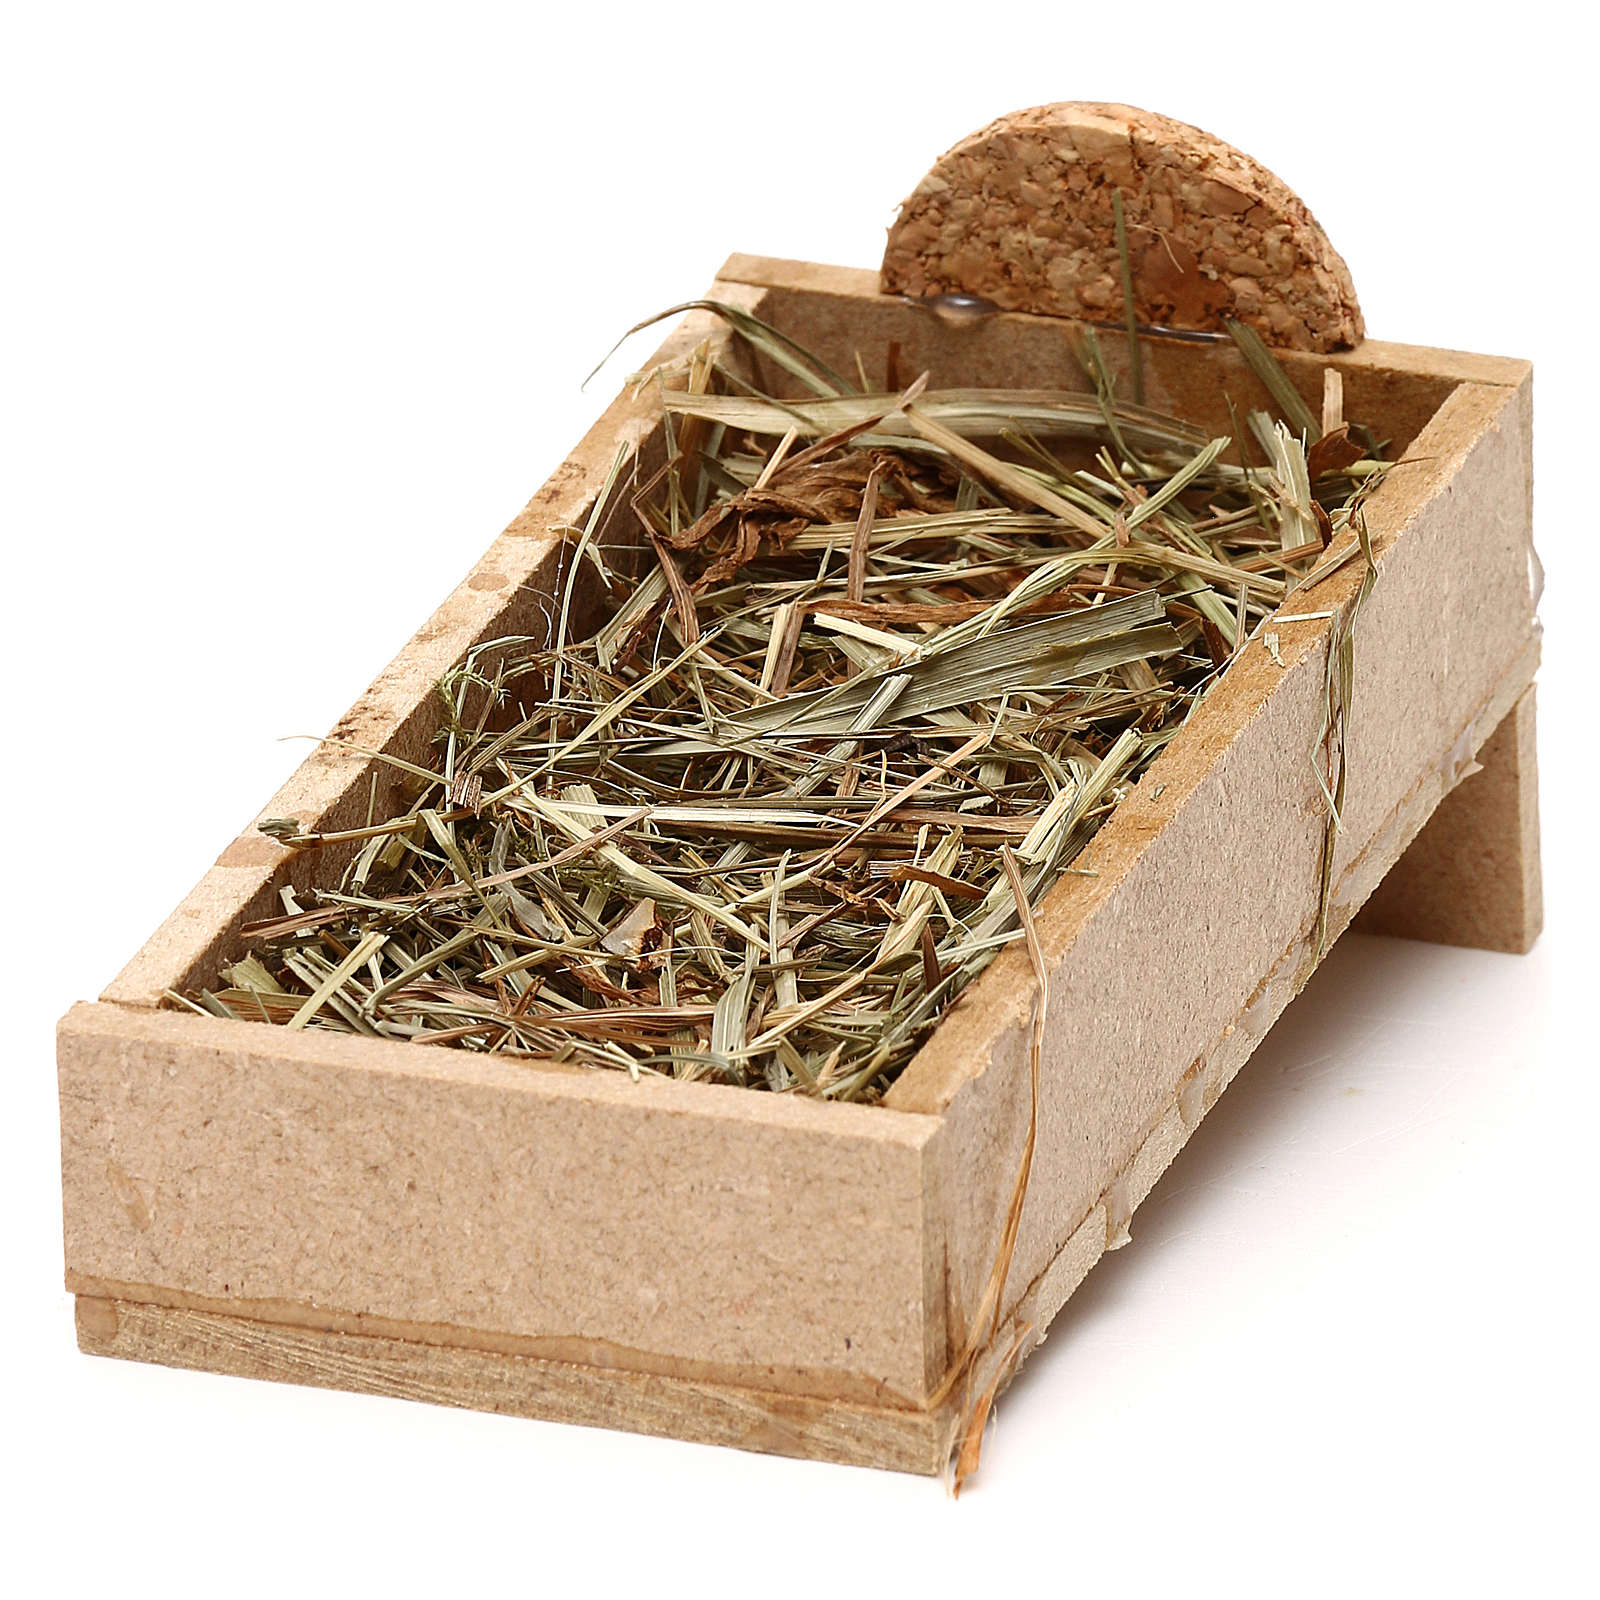 Cradle made of wood and straw for Nativity Scene 10 cm 3